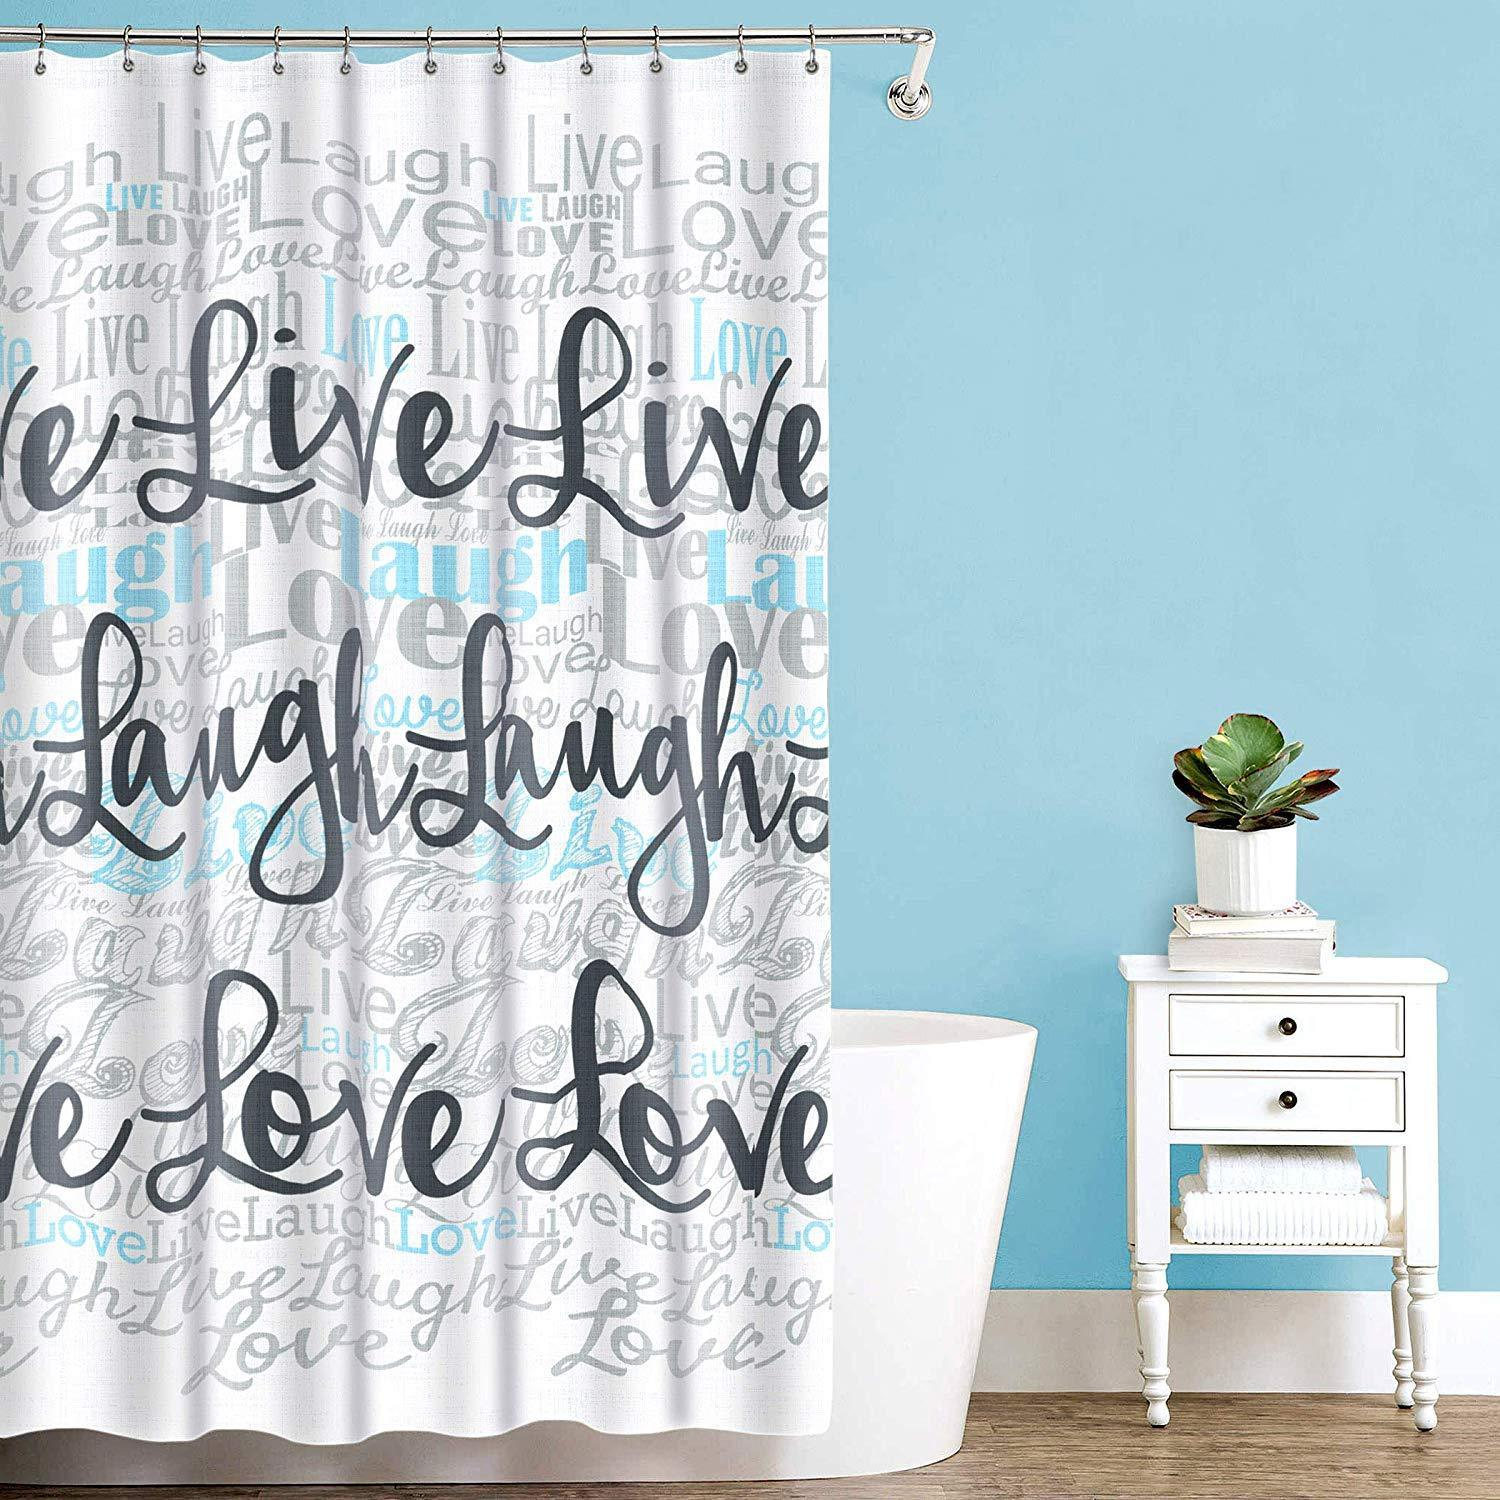 SPLASH BATH SHOWER CURTAIN PEVA VINYL - LIVE LOVE LAUGH - 70 x 72 NEW